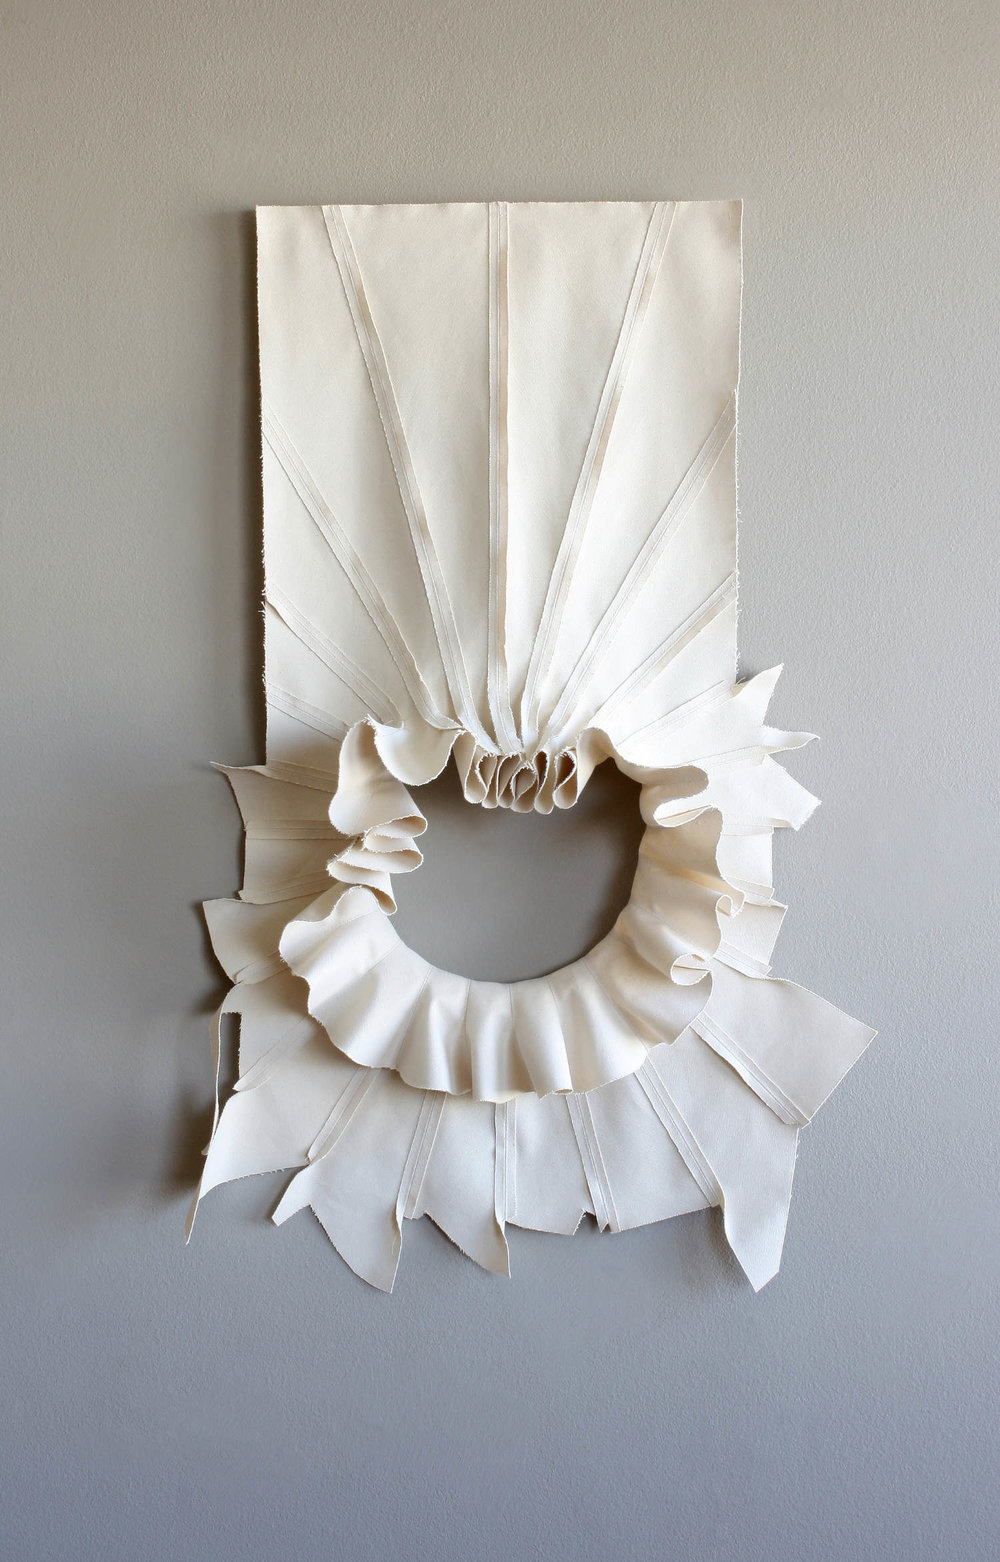 Copy of Sculptural wall tapestry